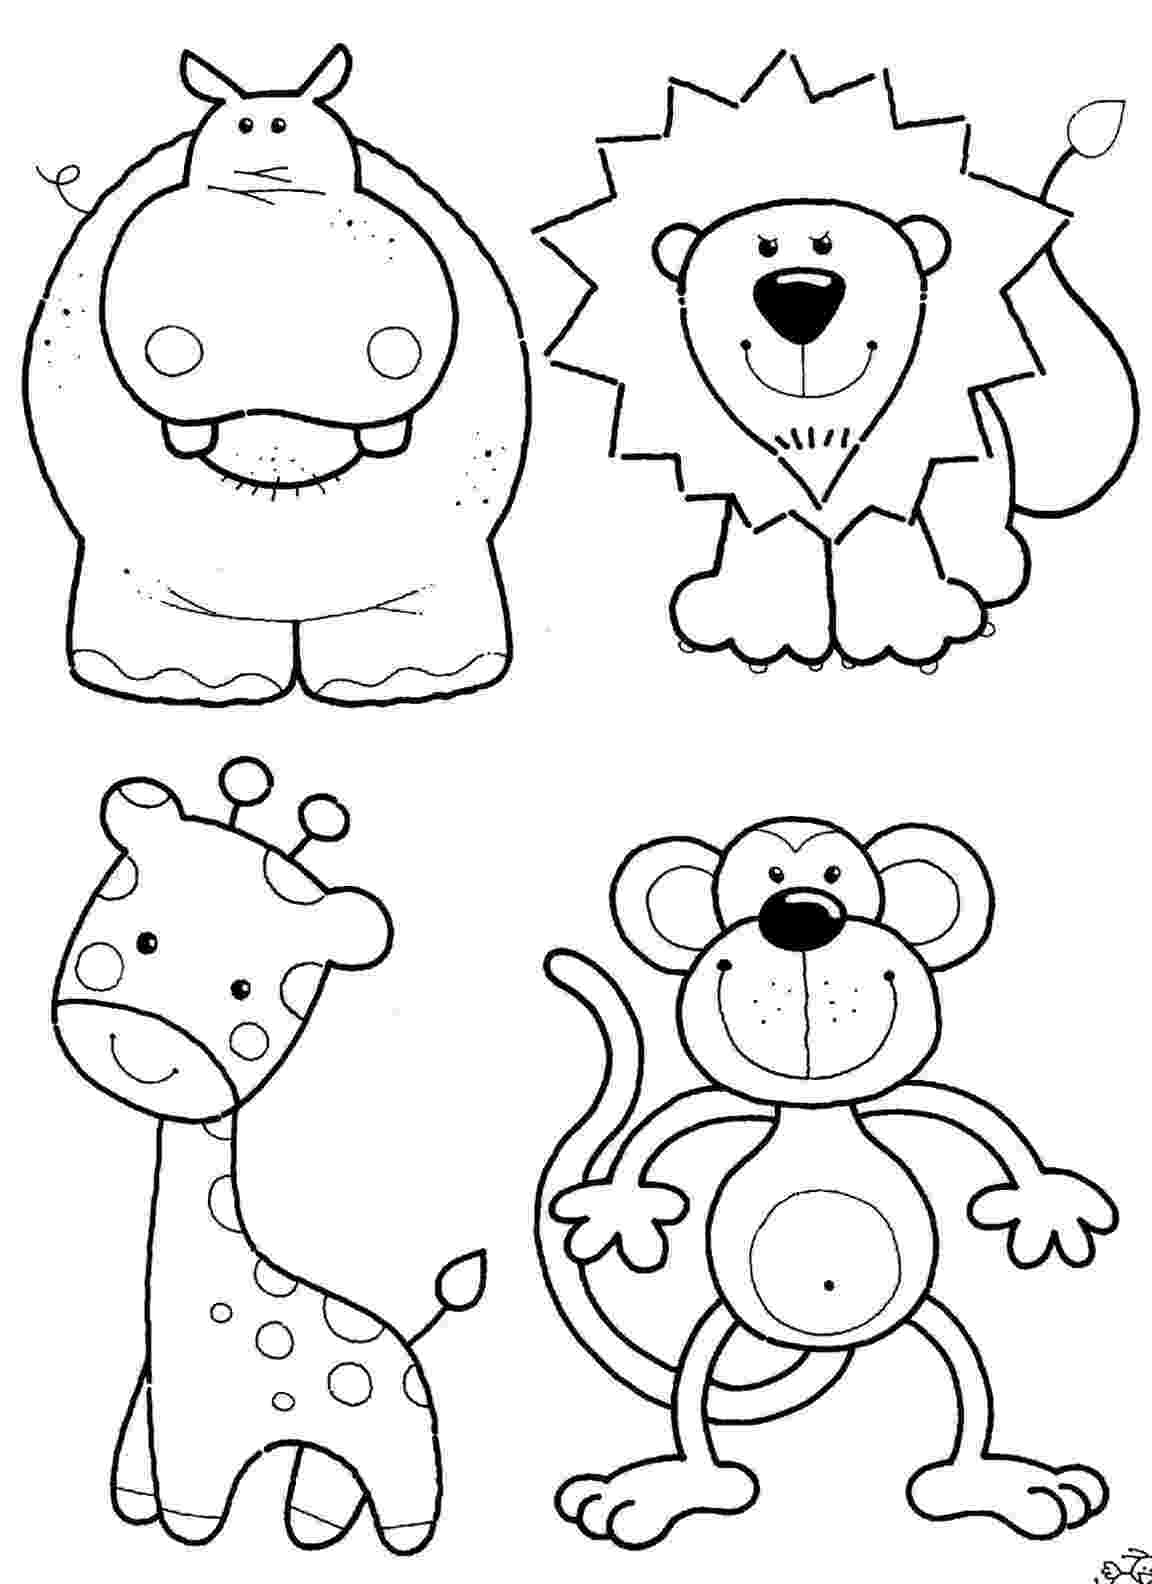 colouring pages animals to print jungle animal coloring pages to download and print for free colouring animals print pages to